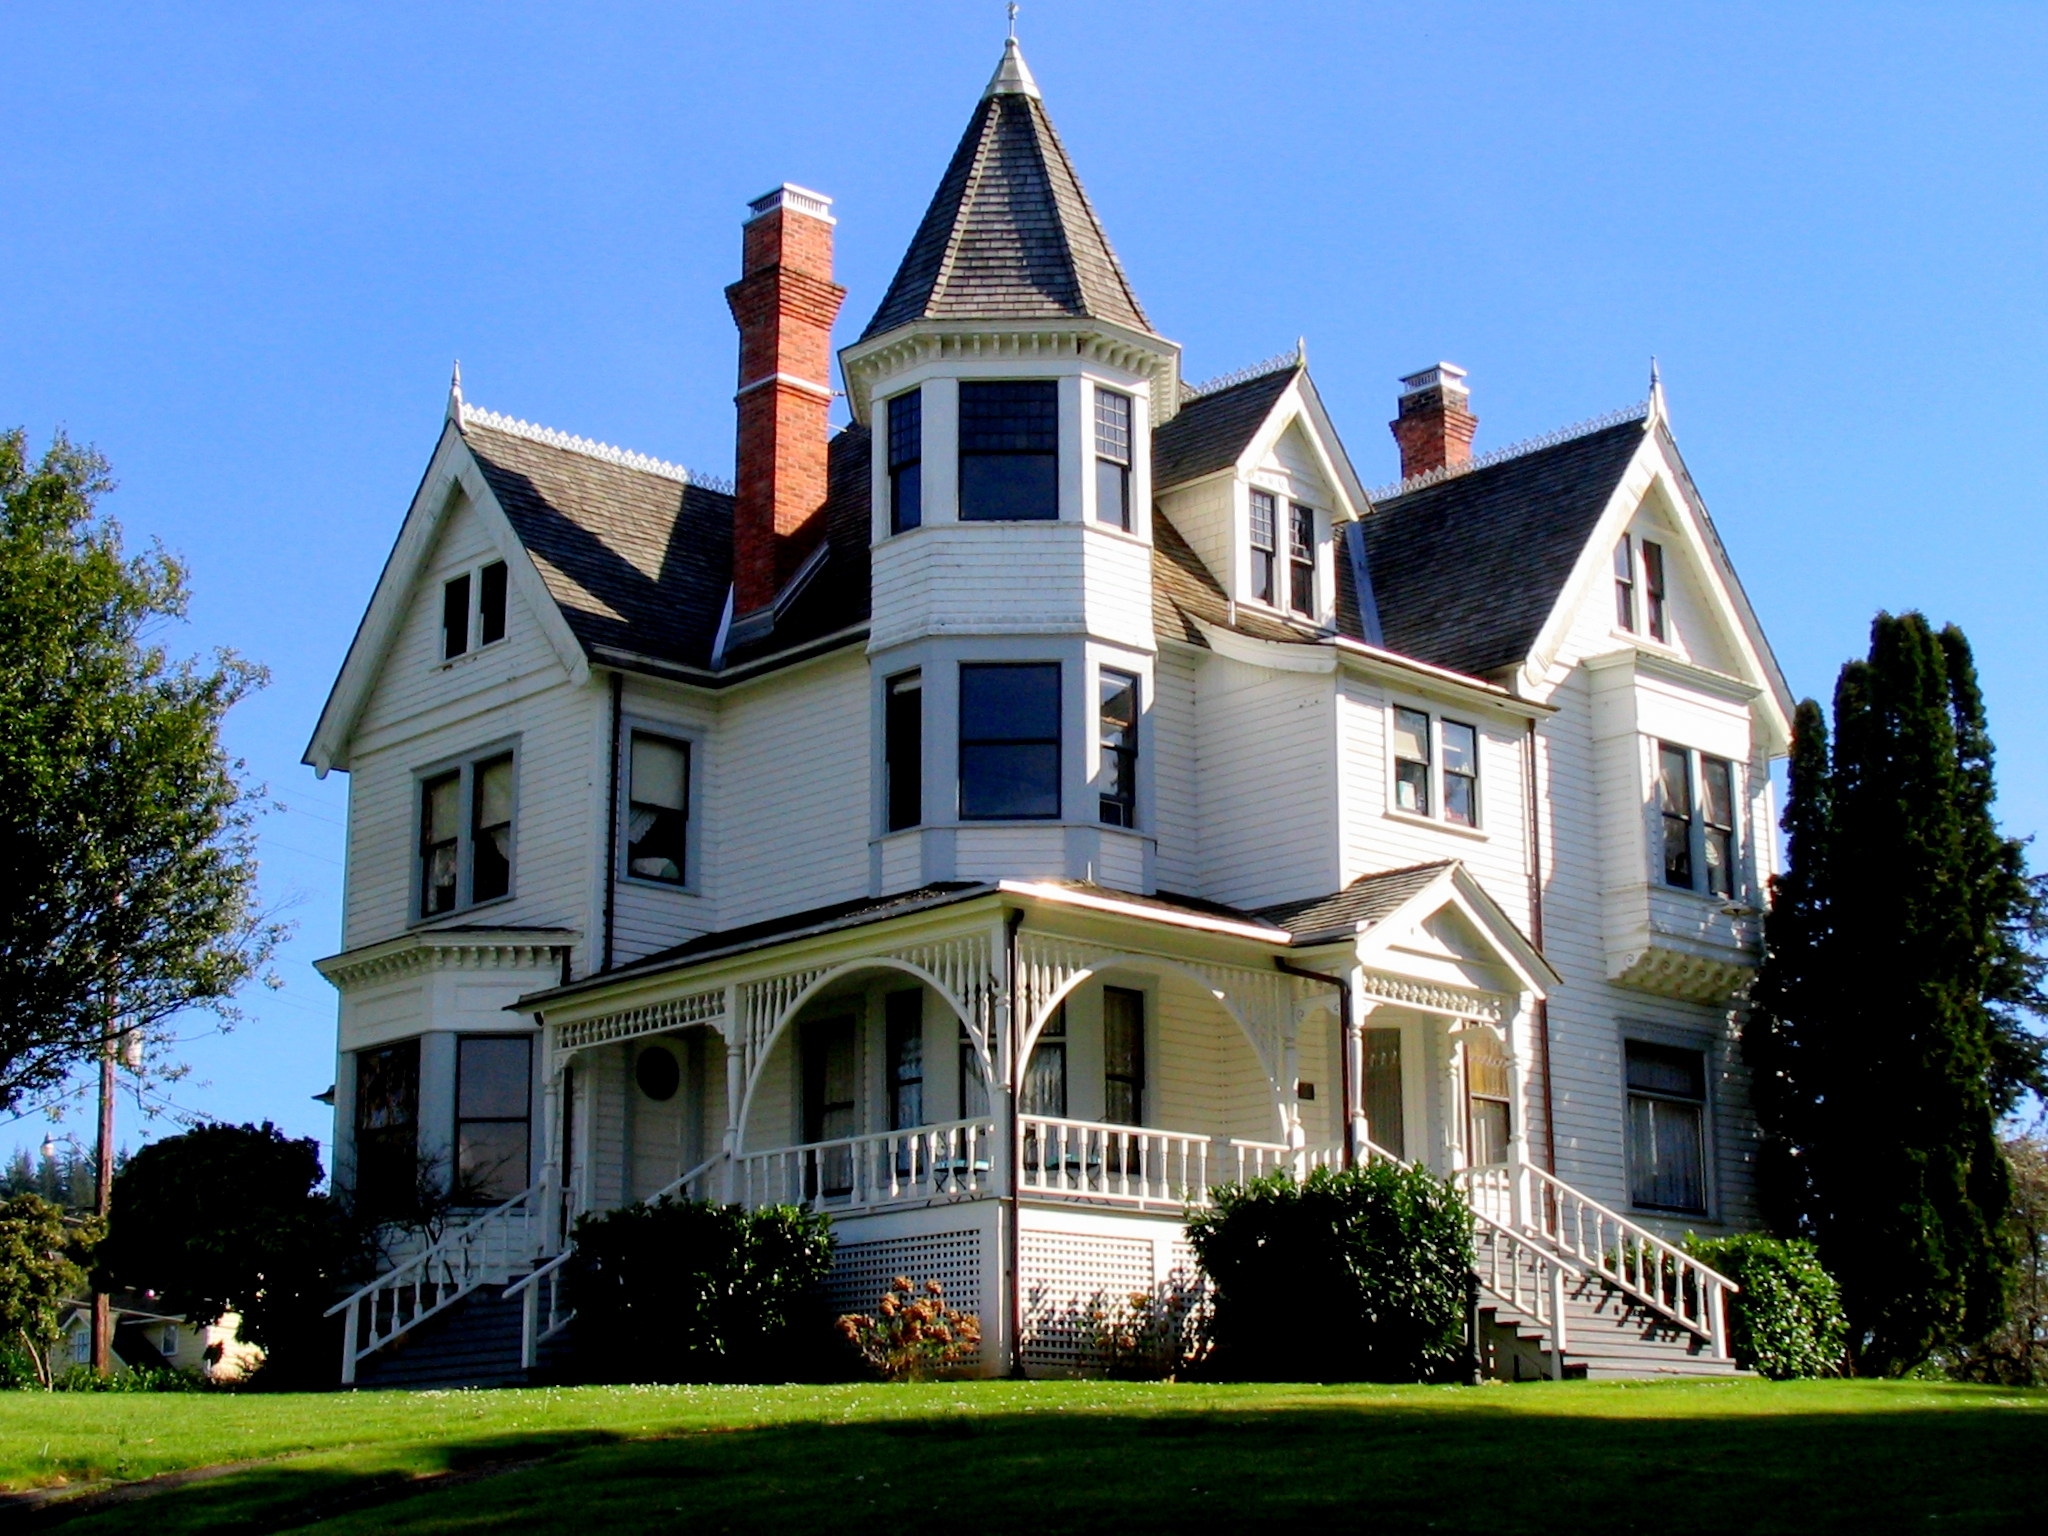 File:Sherwood House - Coquille, Oregon (2005).jpg - Wikimedia Commons